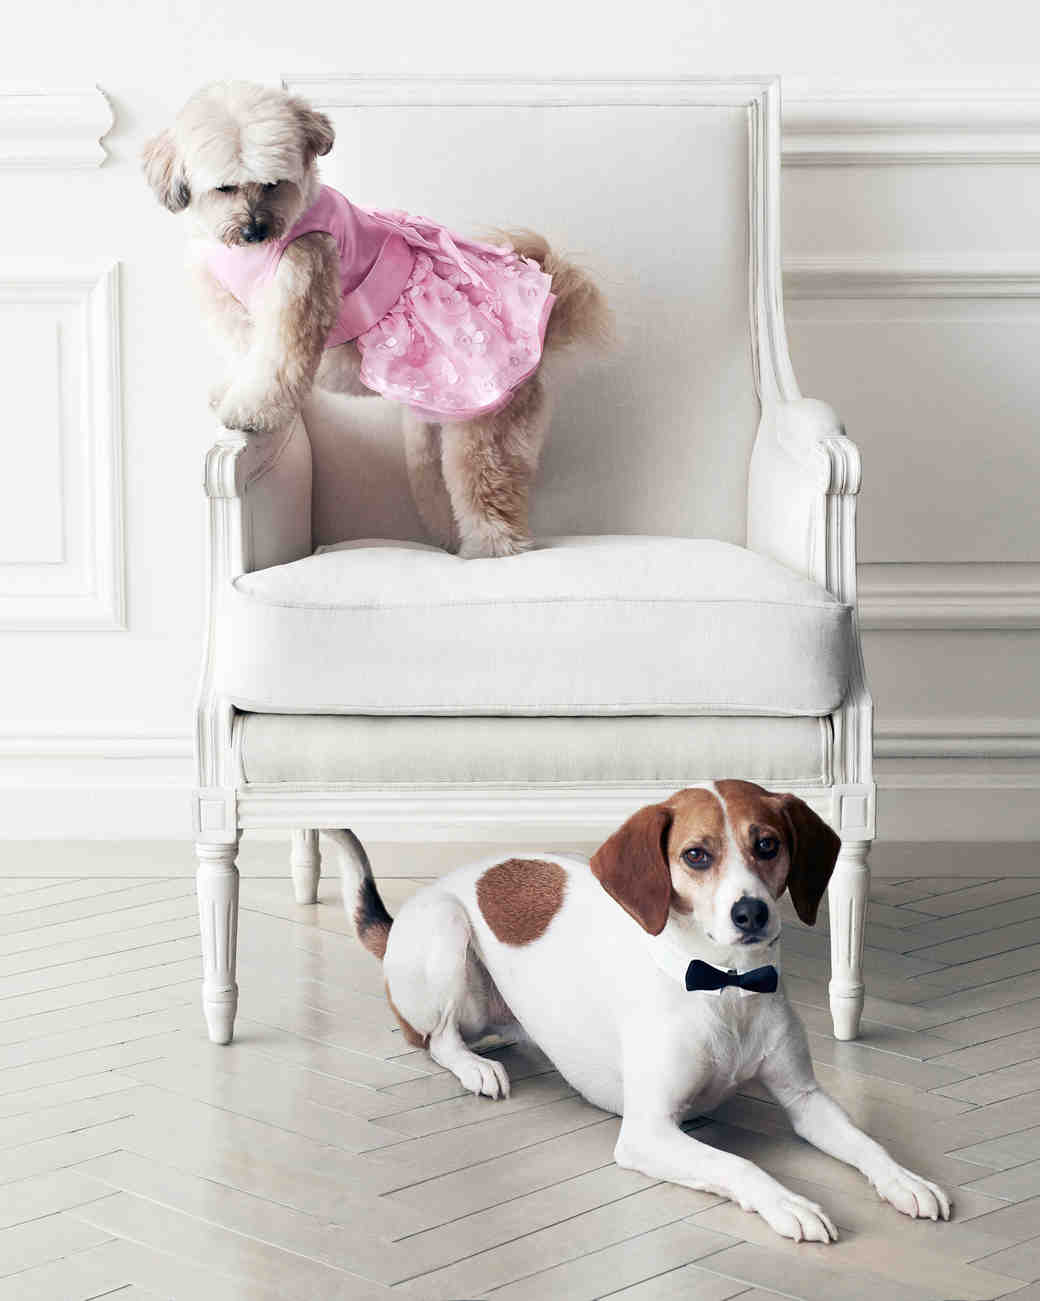 wedding-pet-clothes-dog-on-chair-082-d111997-0515.jpg